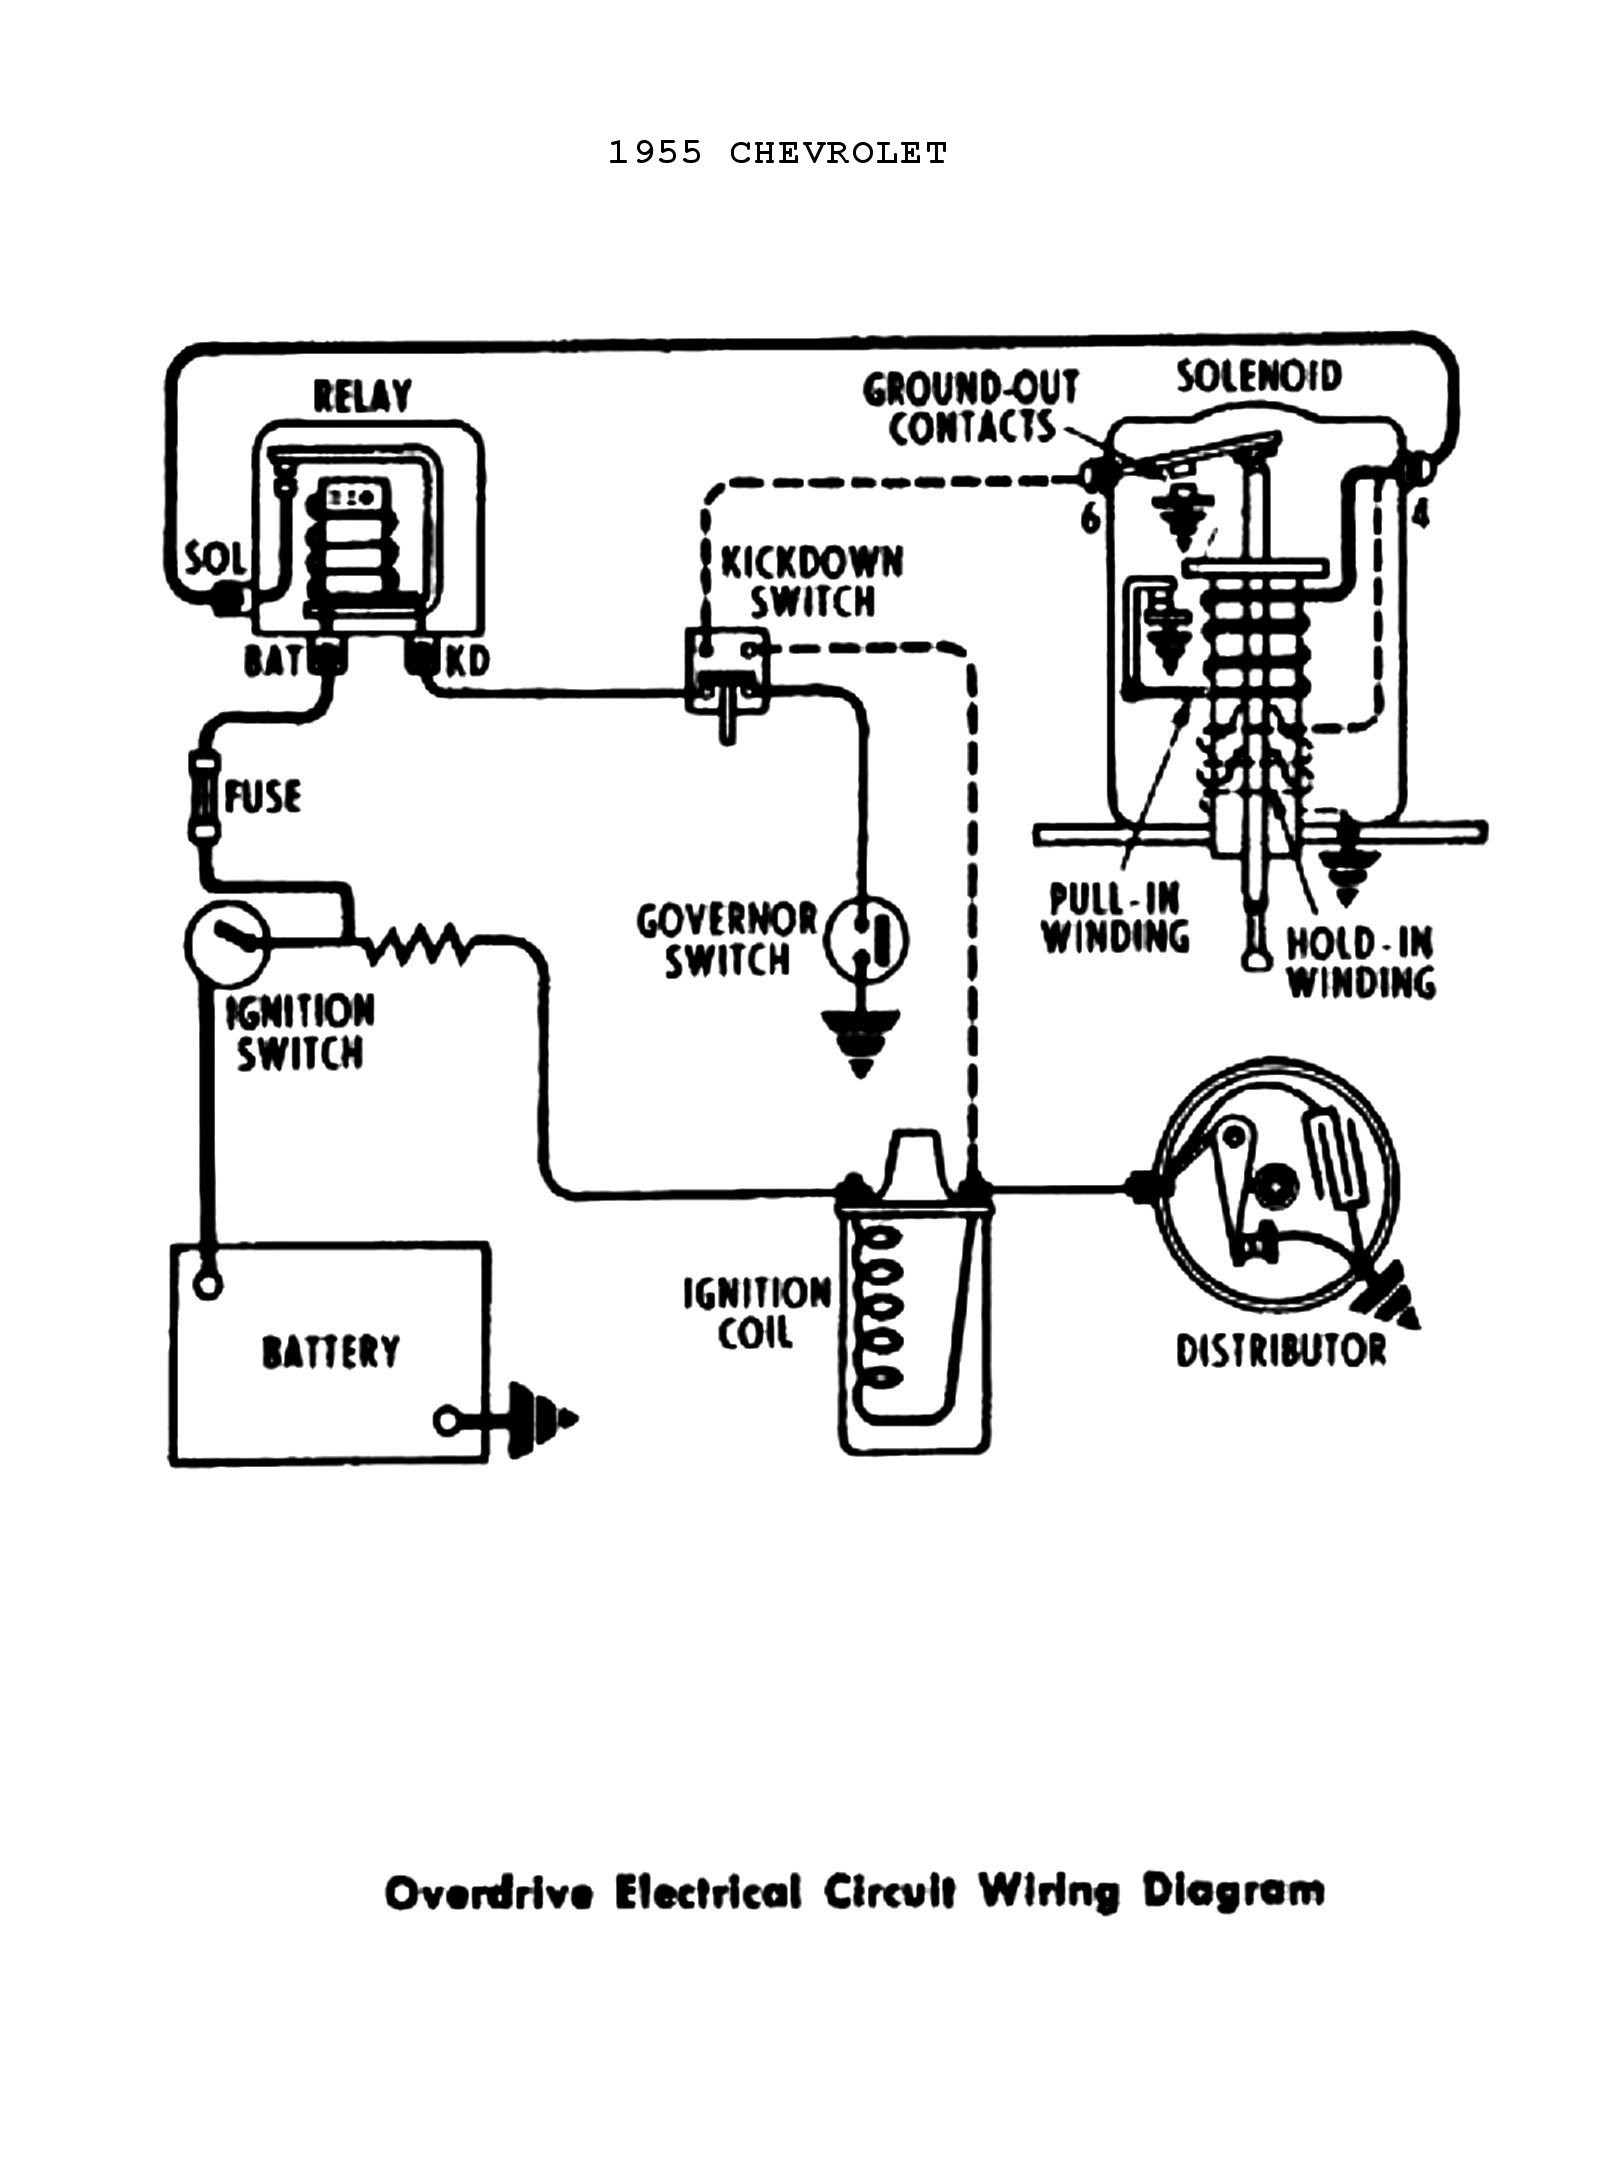 Wiring Diagram Mercury Ignition Switch Chevy Wiring Diagrams Of Wiring Diagram Mercury Ignition Switch